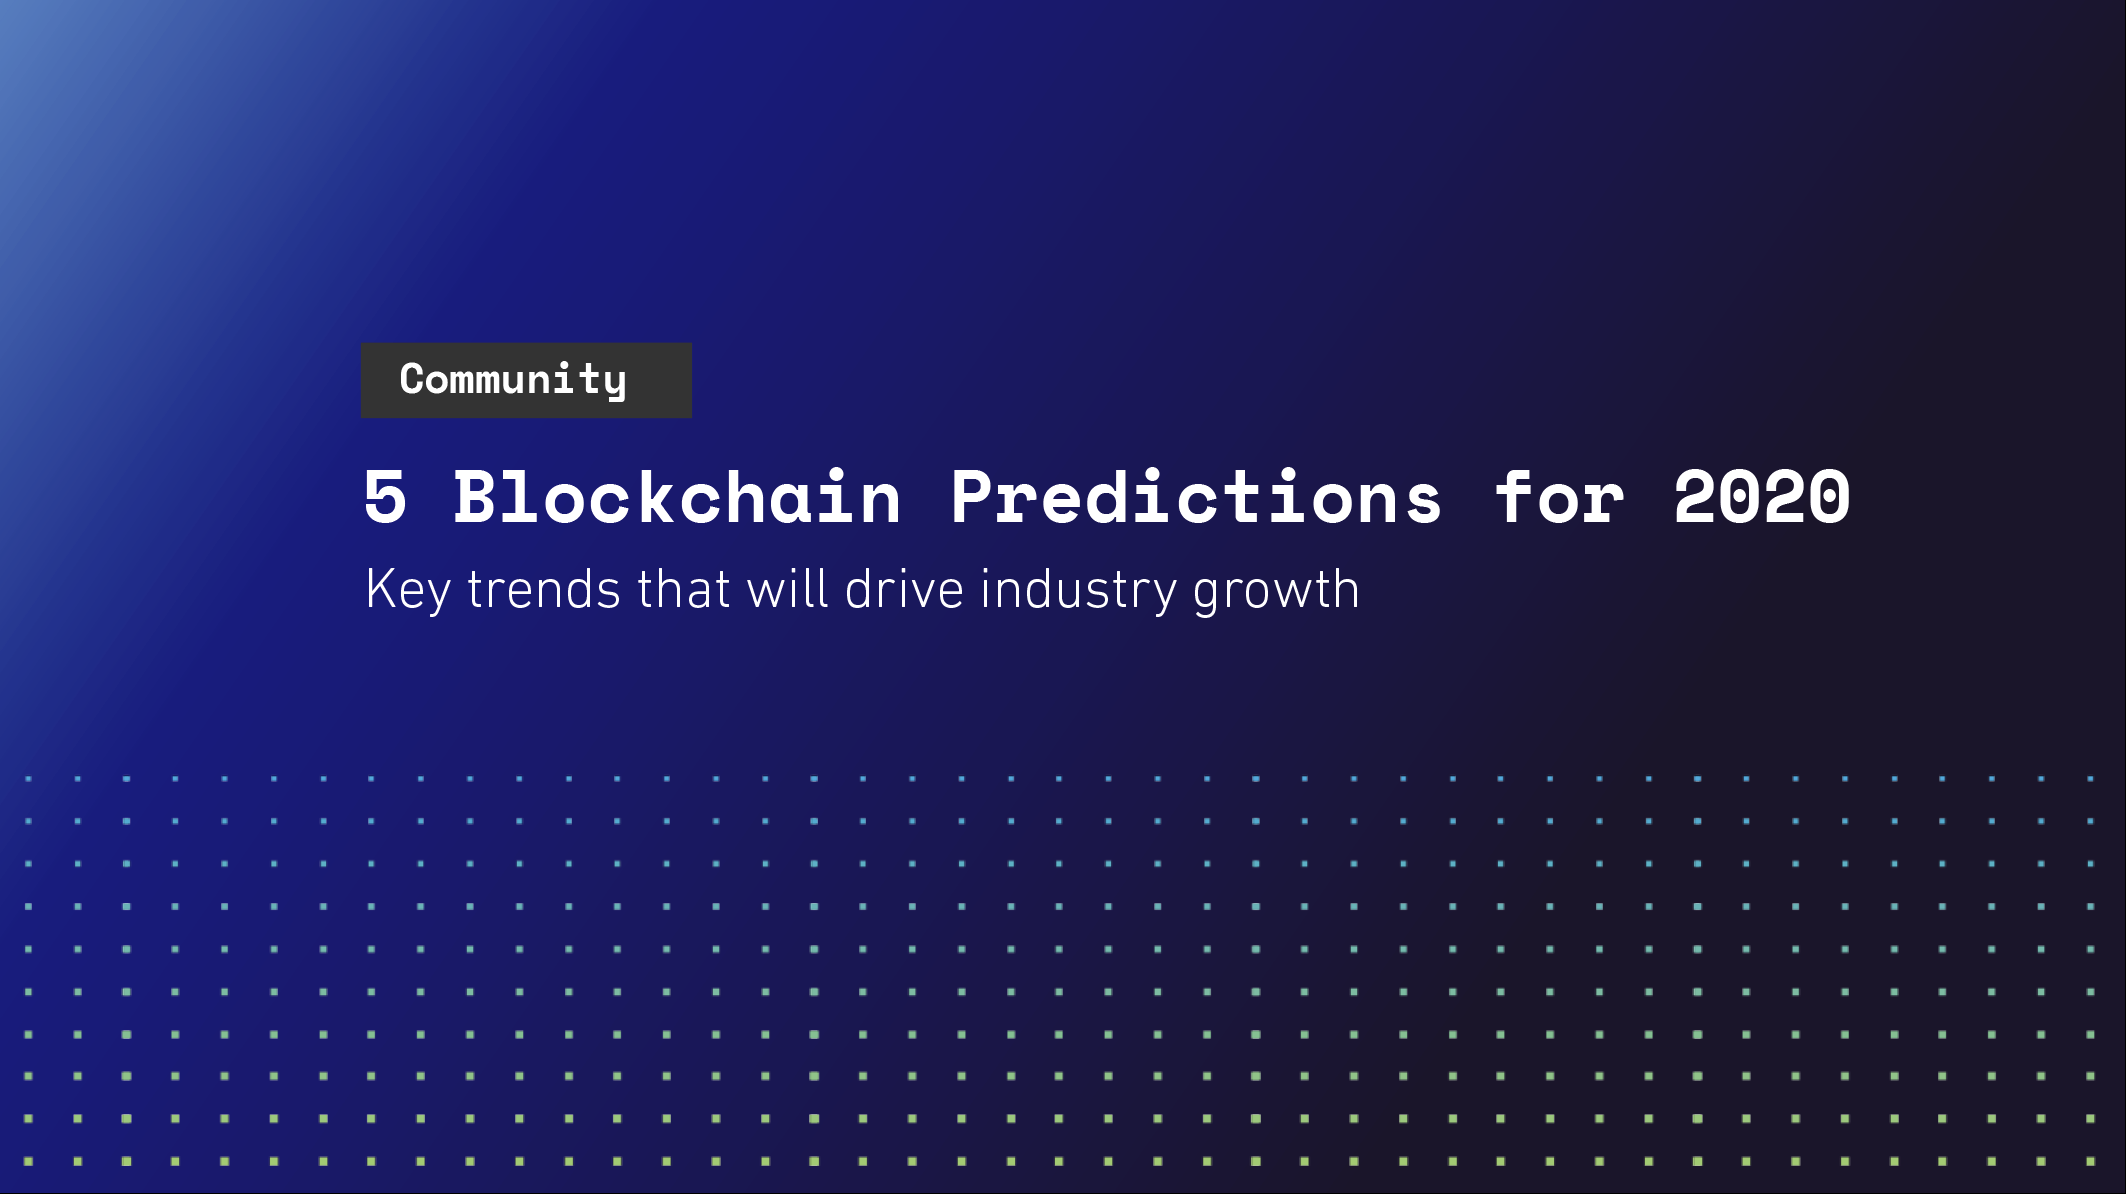 5 Blockchain Predictions for 2020